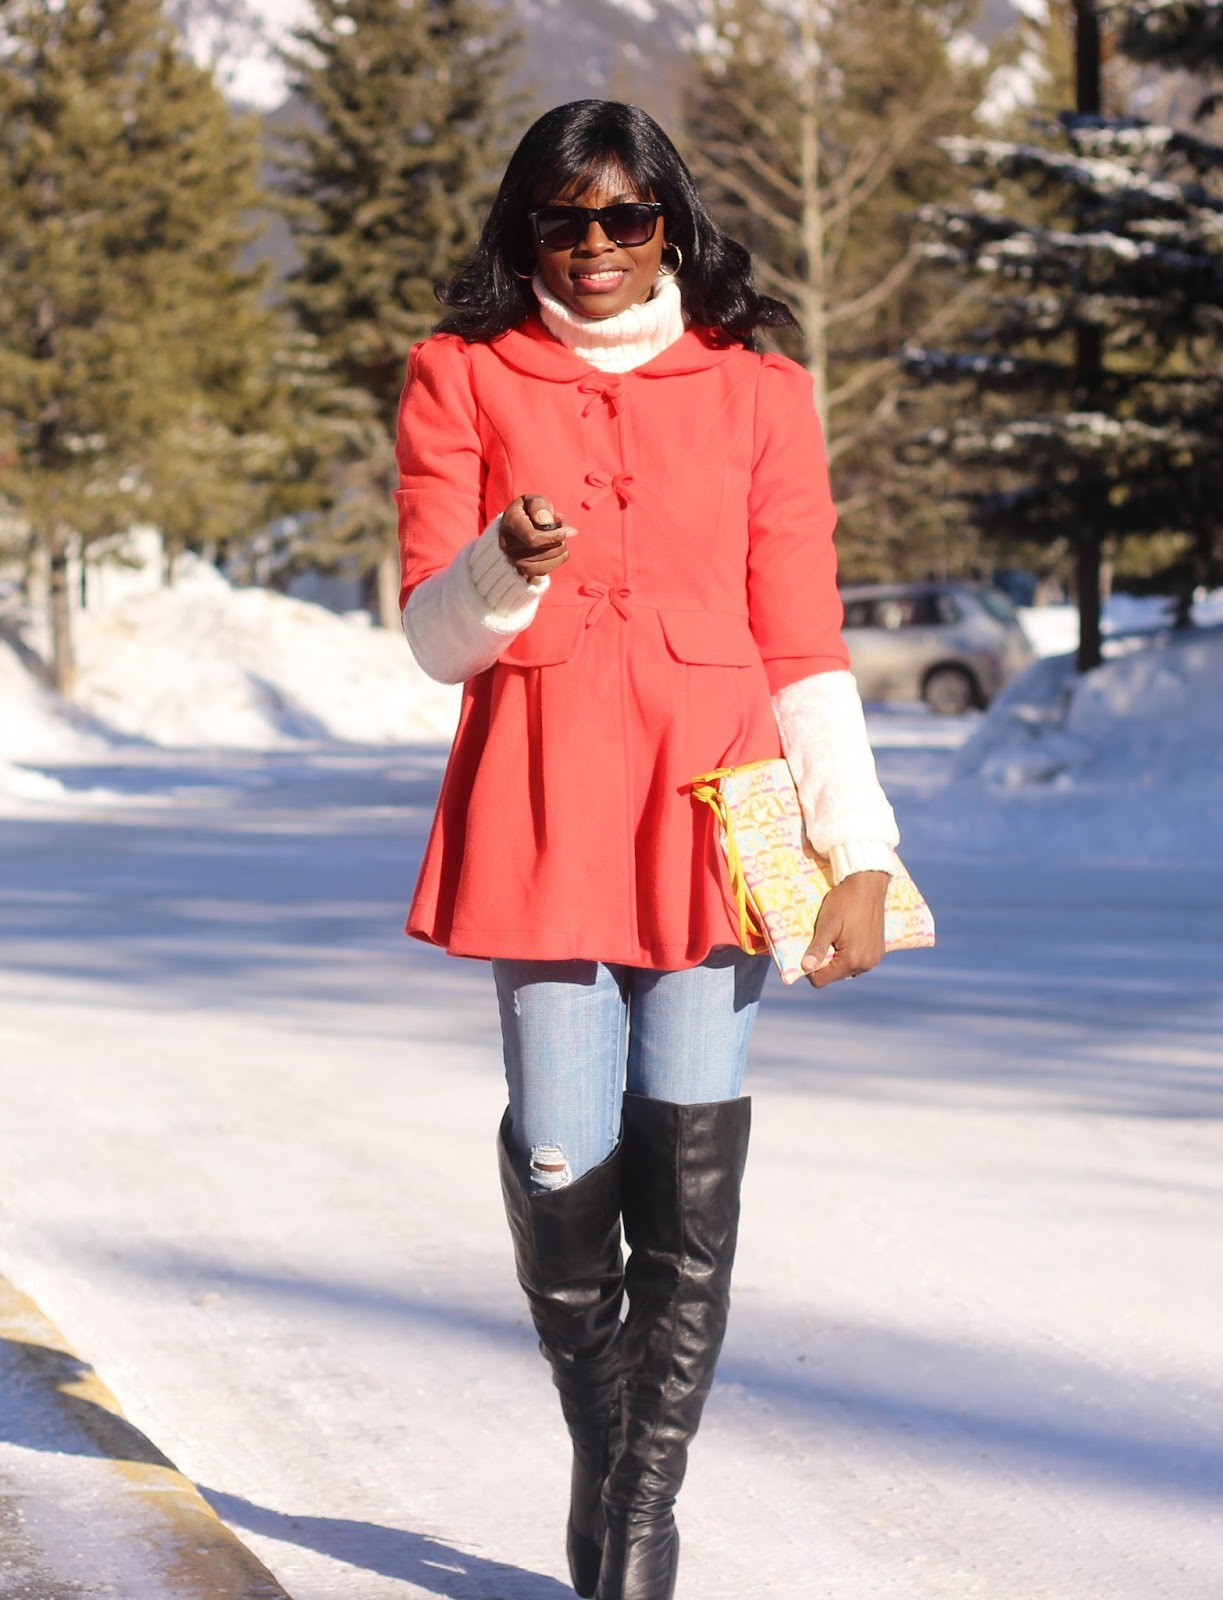 Coat dress styled with over the knee boots